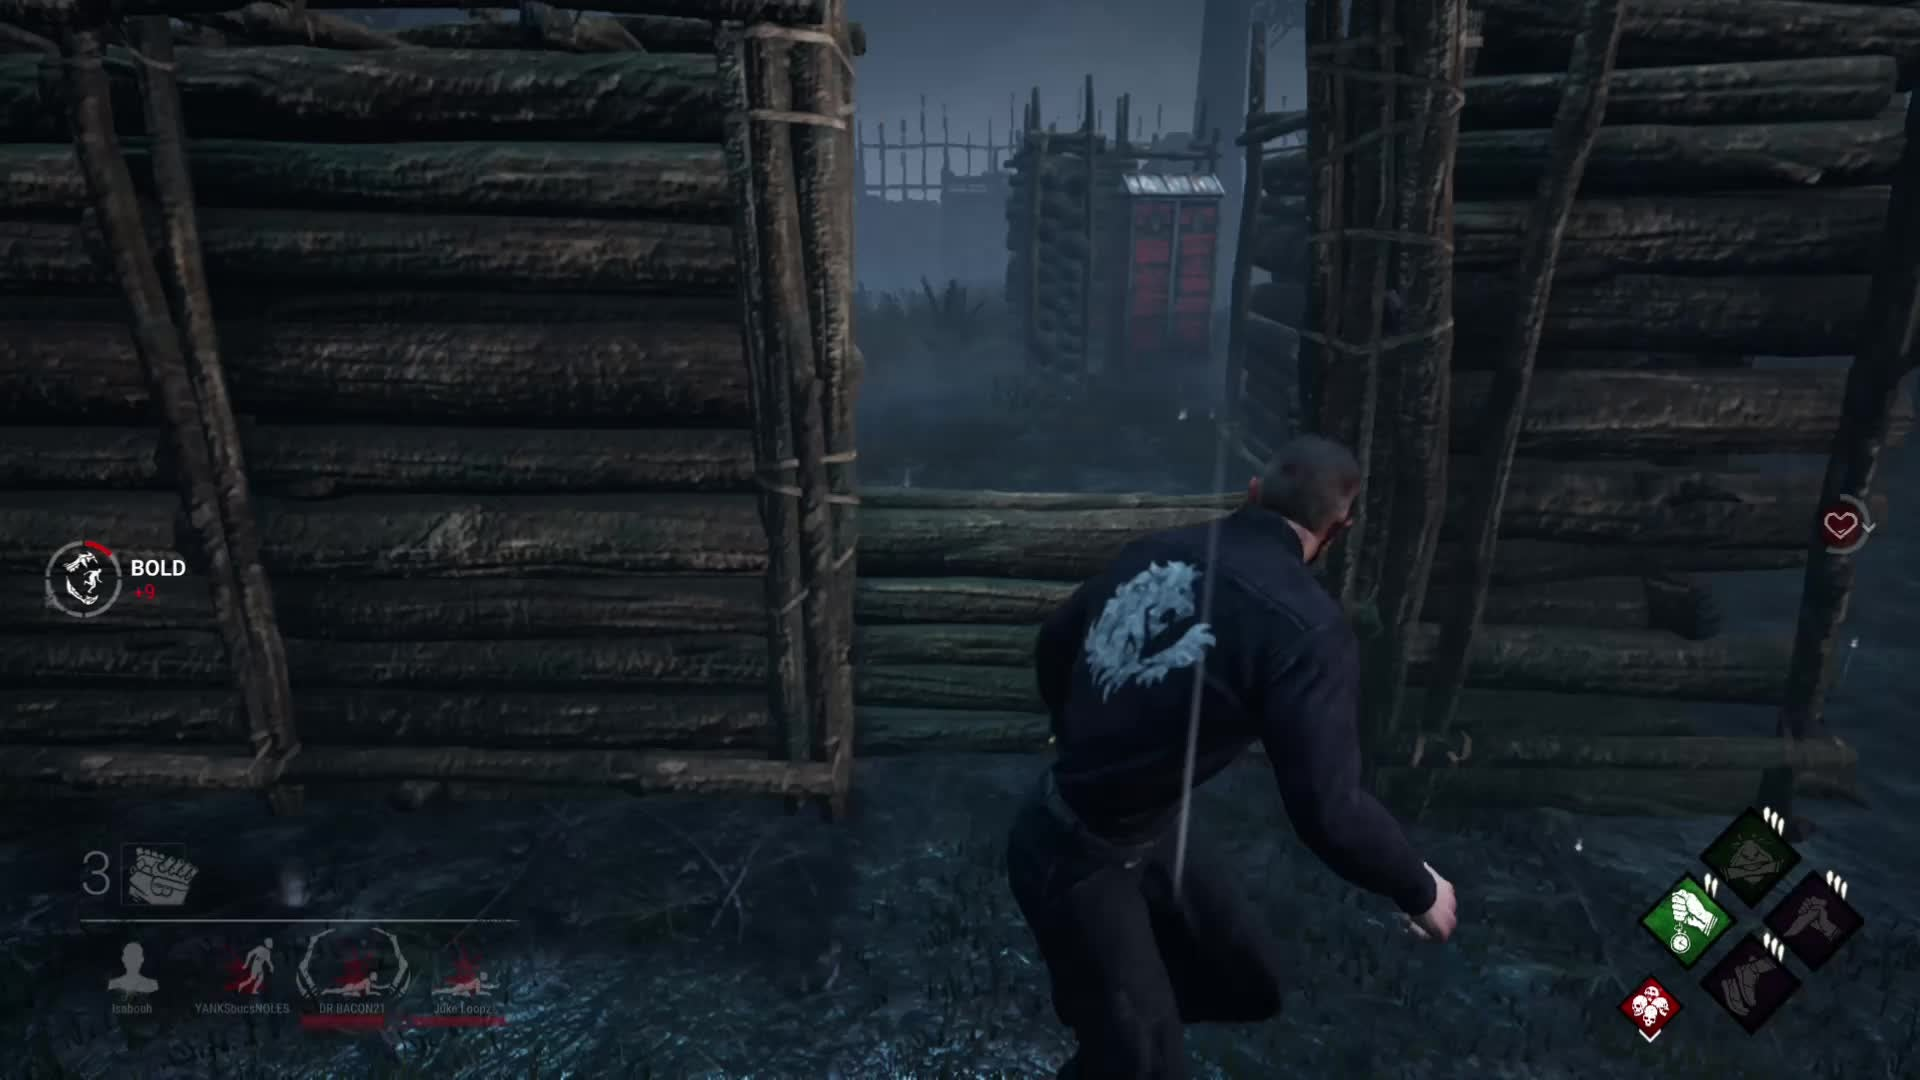 Dead by Daylight: General - Confused Ghost Face video cover image 1